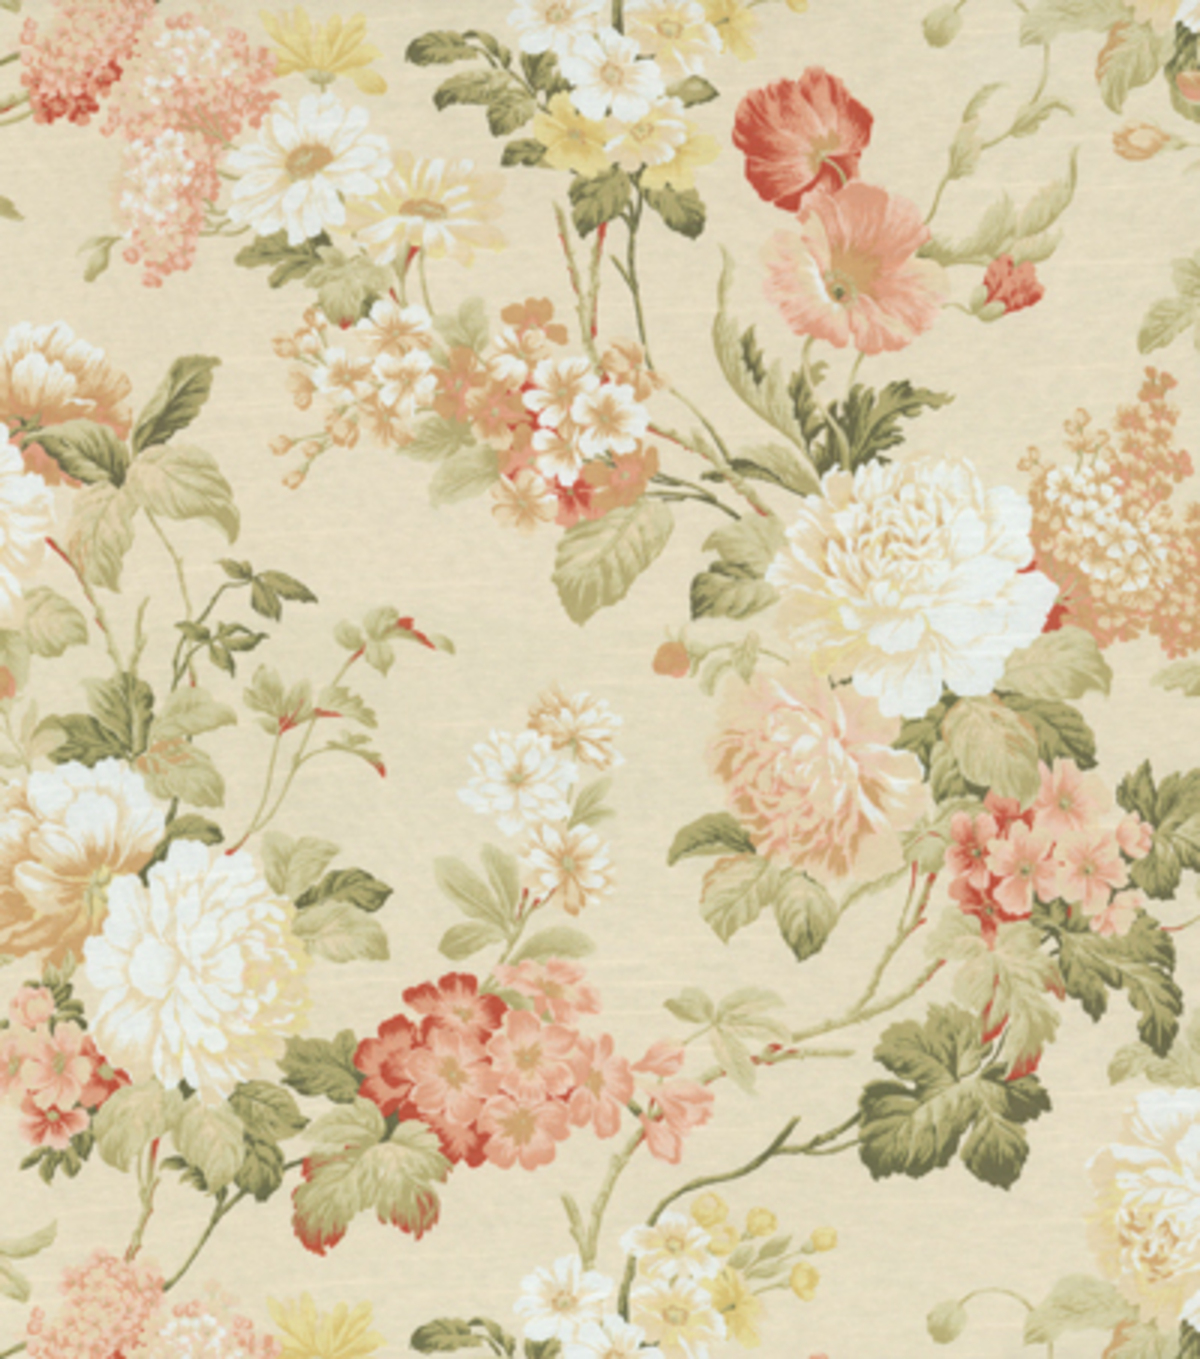 Home Decor Print Fabric-Richloom Studio Moments Coral